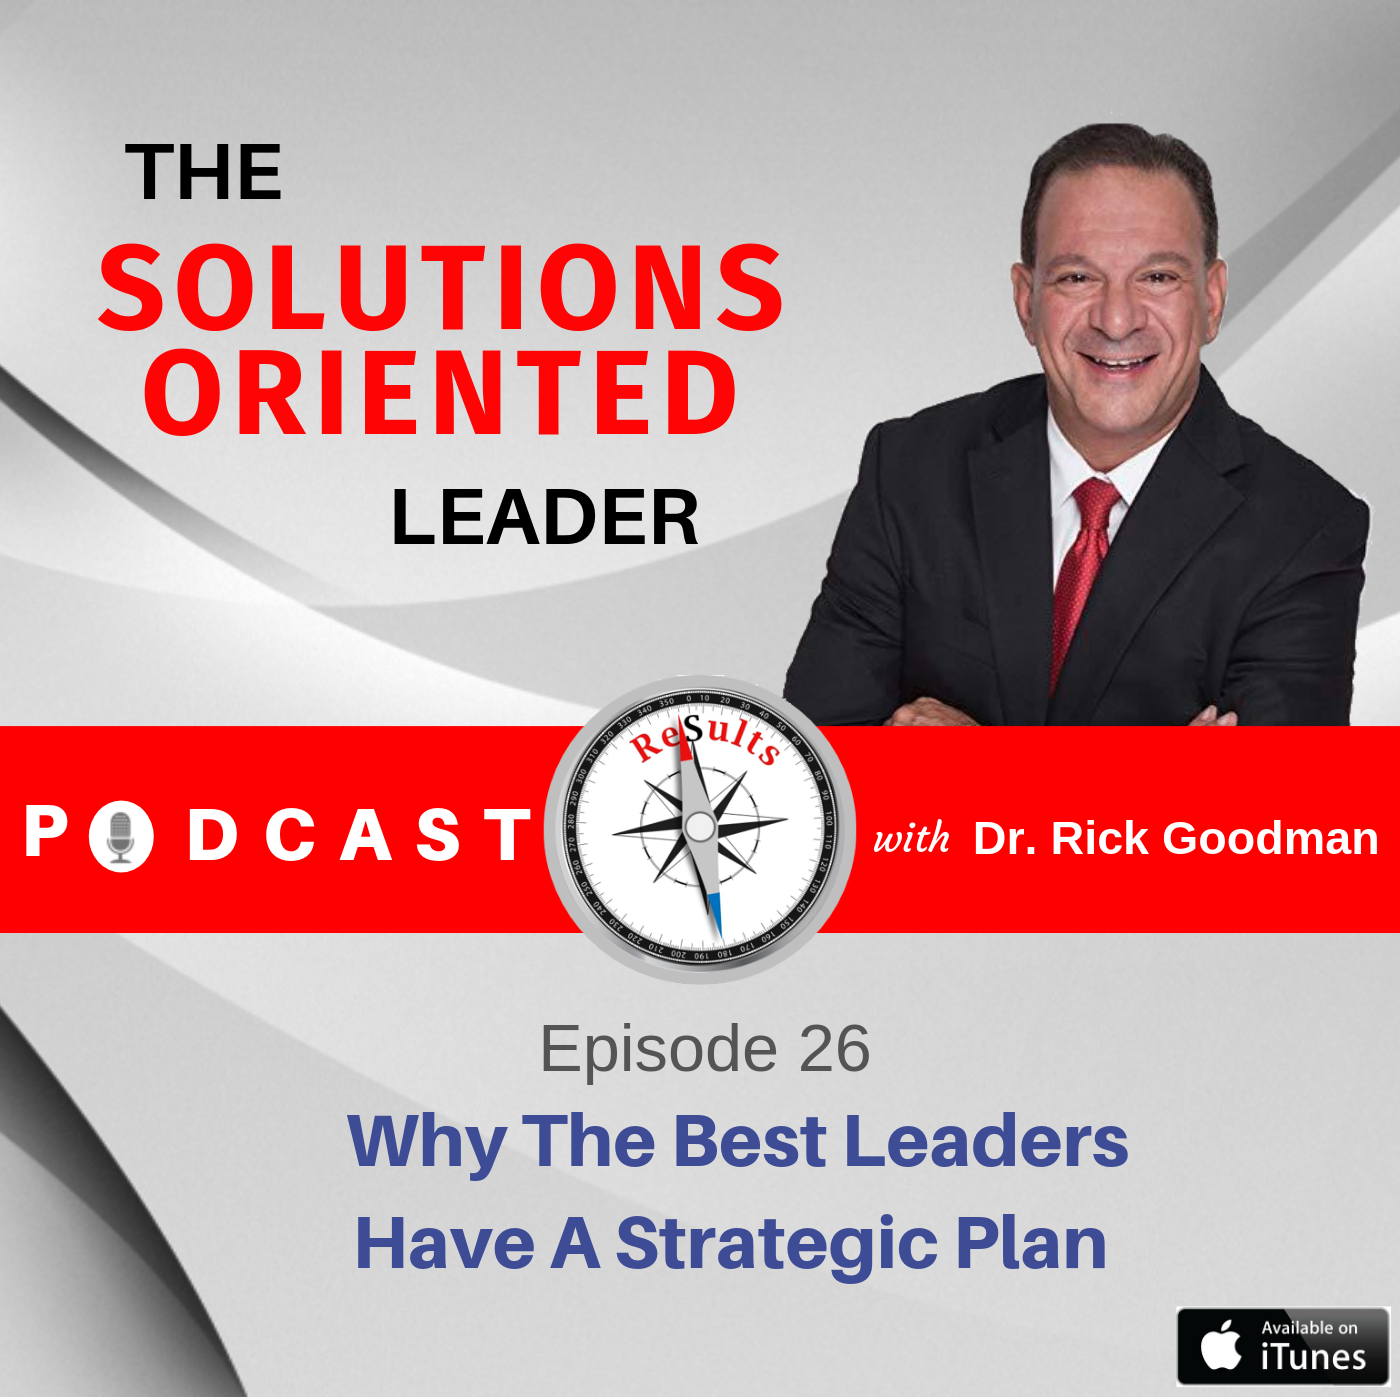 Why The Best Leaders Have A Strategic Plan Episode 26